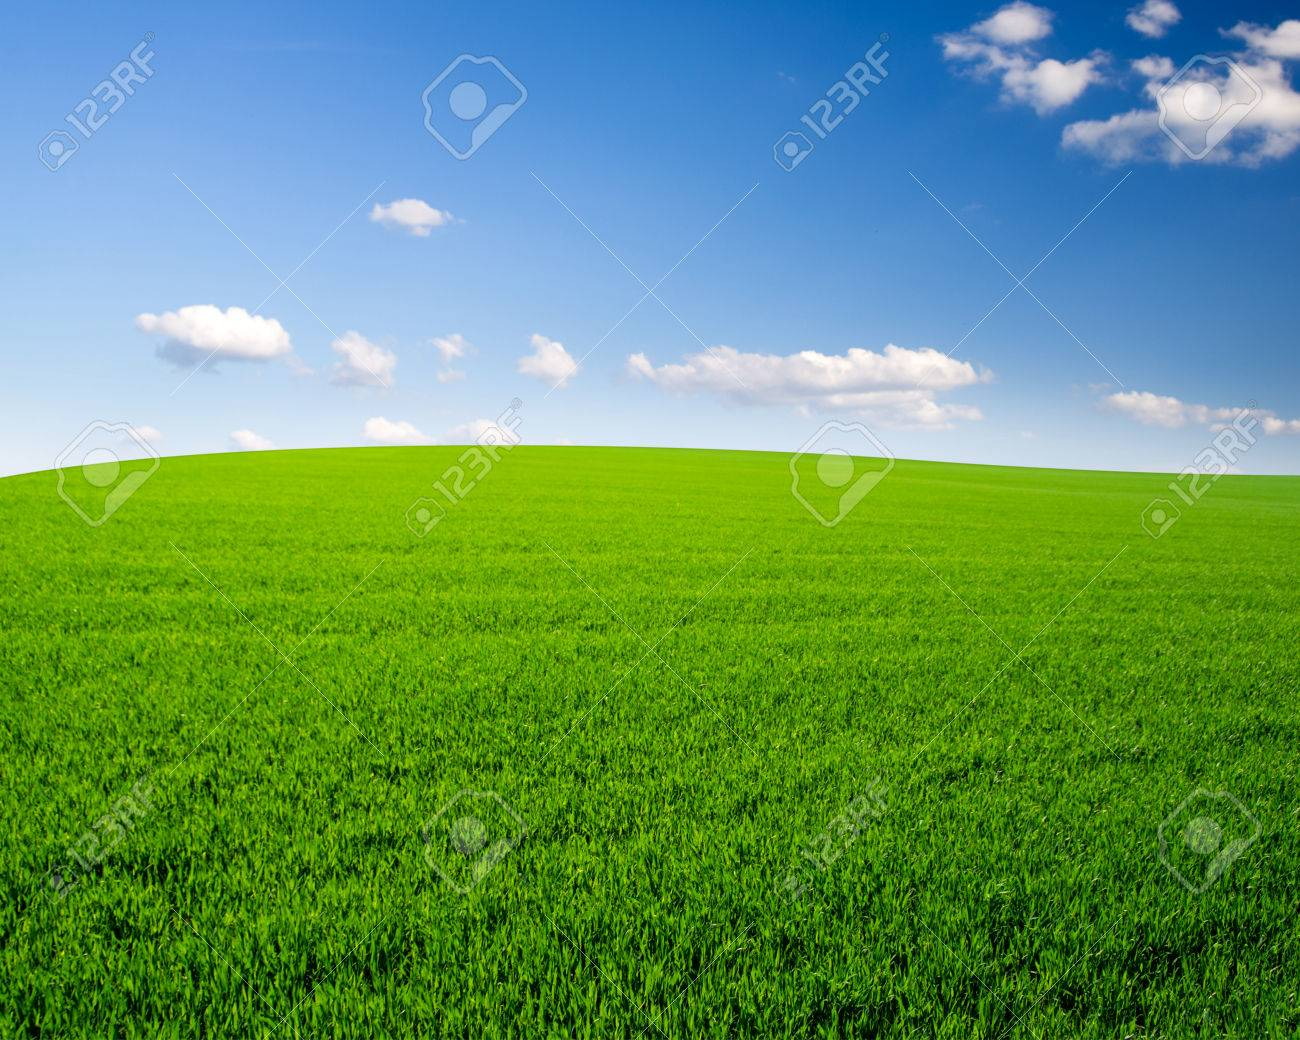 grass field background. Sky And Grass Field Background Stock Photo - 37912944